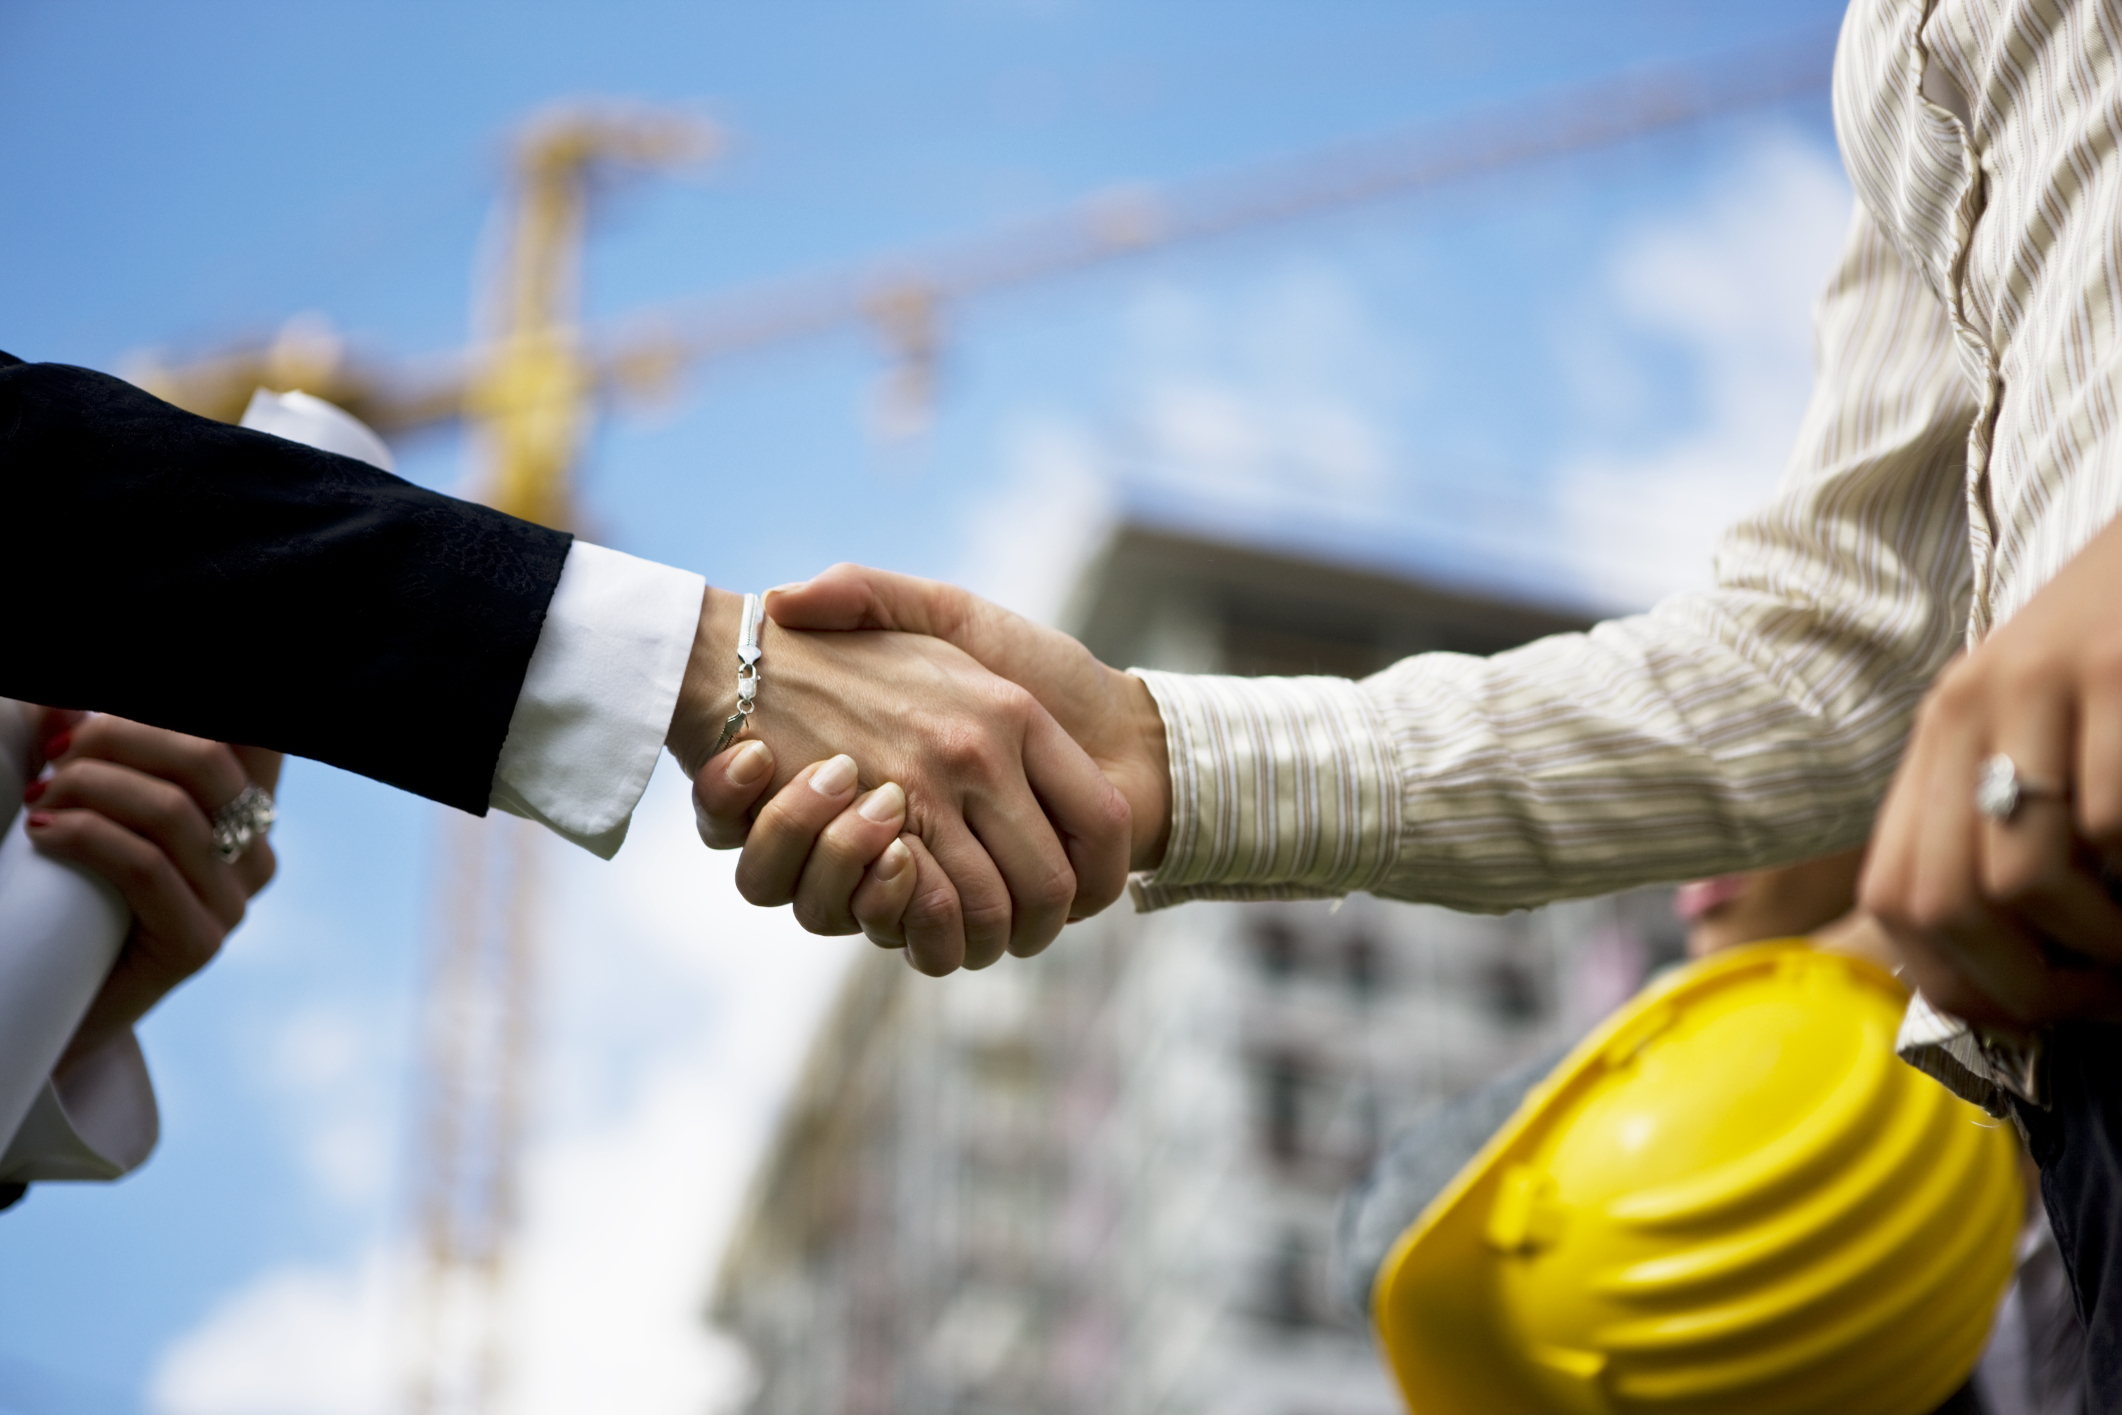 General Contractor - 70% Commercial